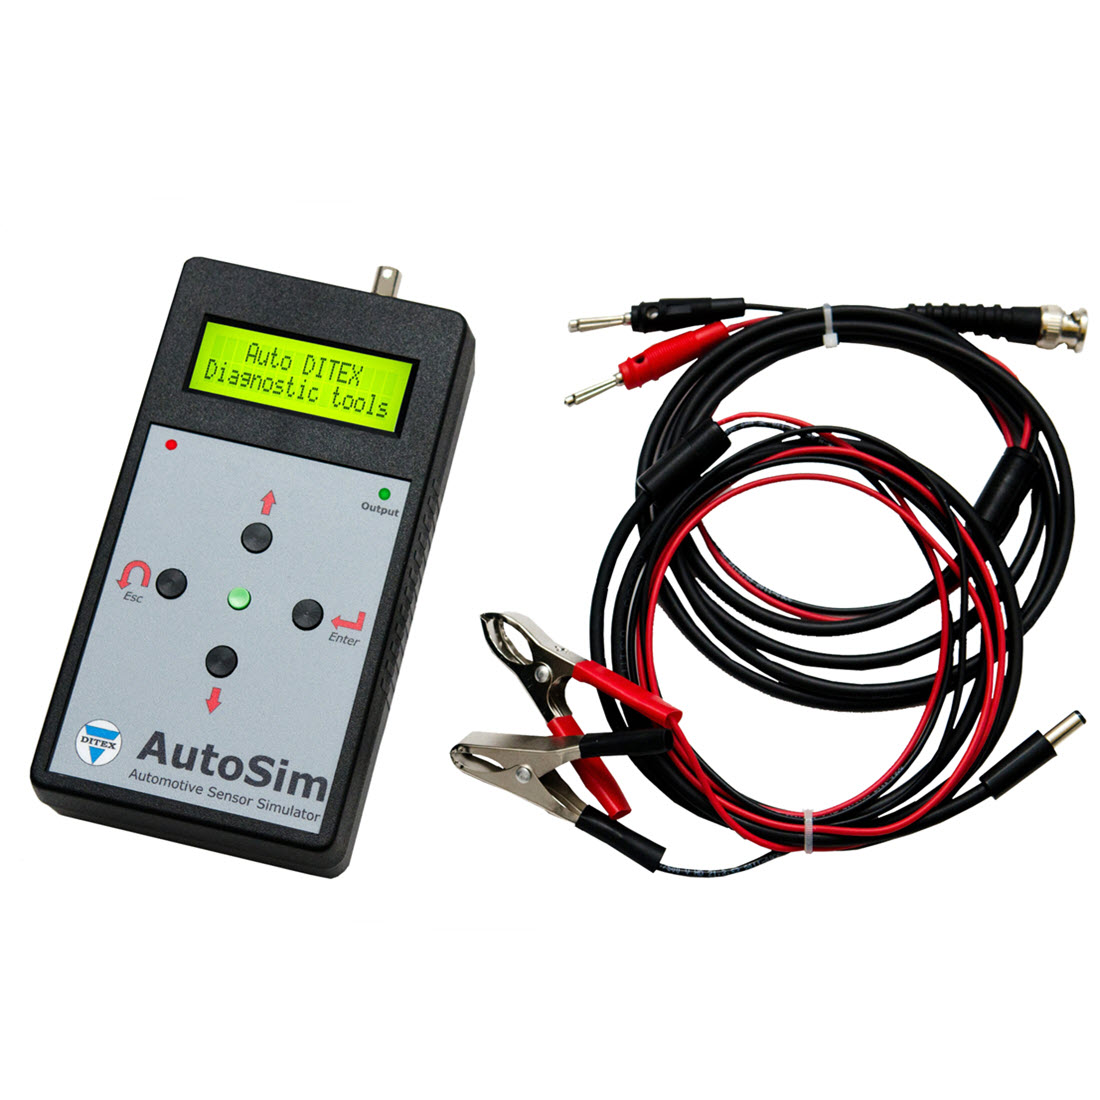 Incredible Automotive Sensor Simulator And Tester For Sale Ryansautomotive Ie Wiring Digital Resources Cettecompassionincorg